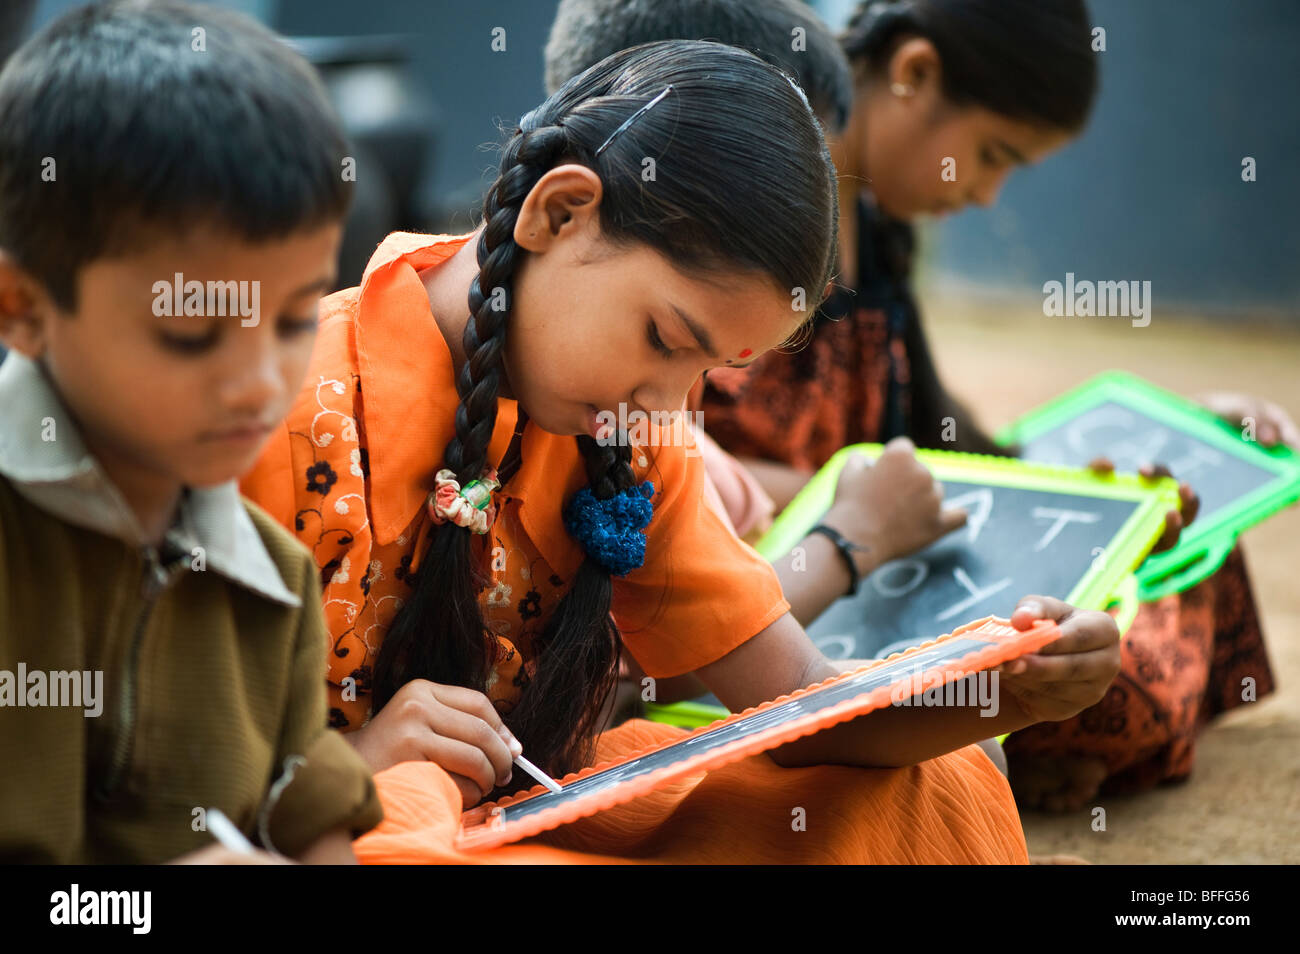 essay school children india